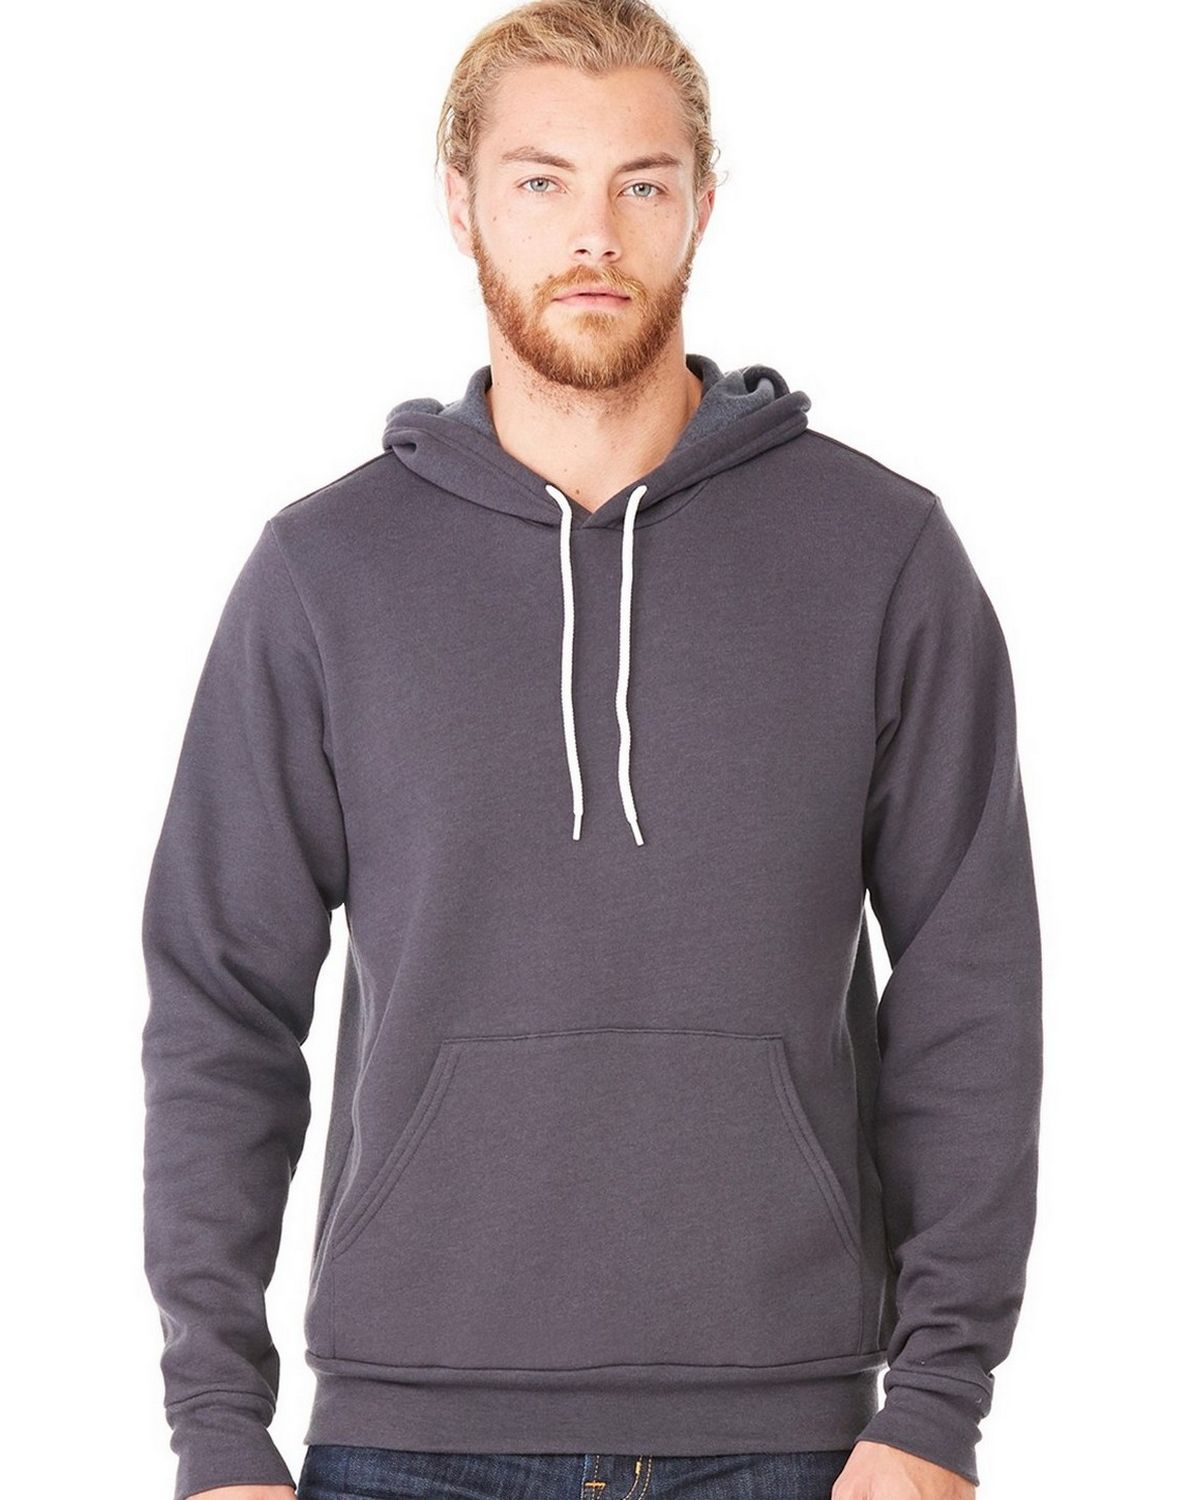 Bella + Canvas C3719 Unisex Pullover Hoodie - Dark Grey Marble Fleece - 2X C3719